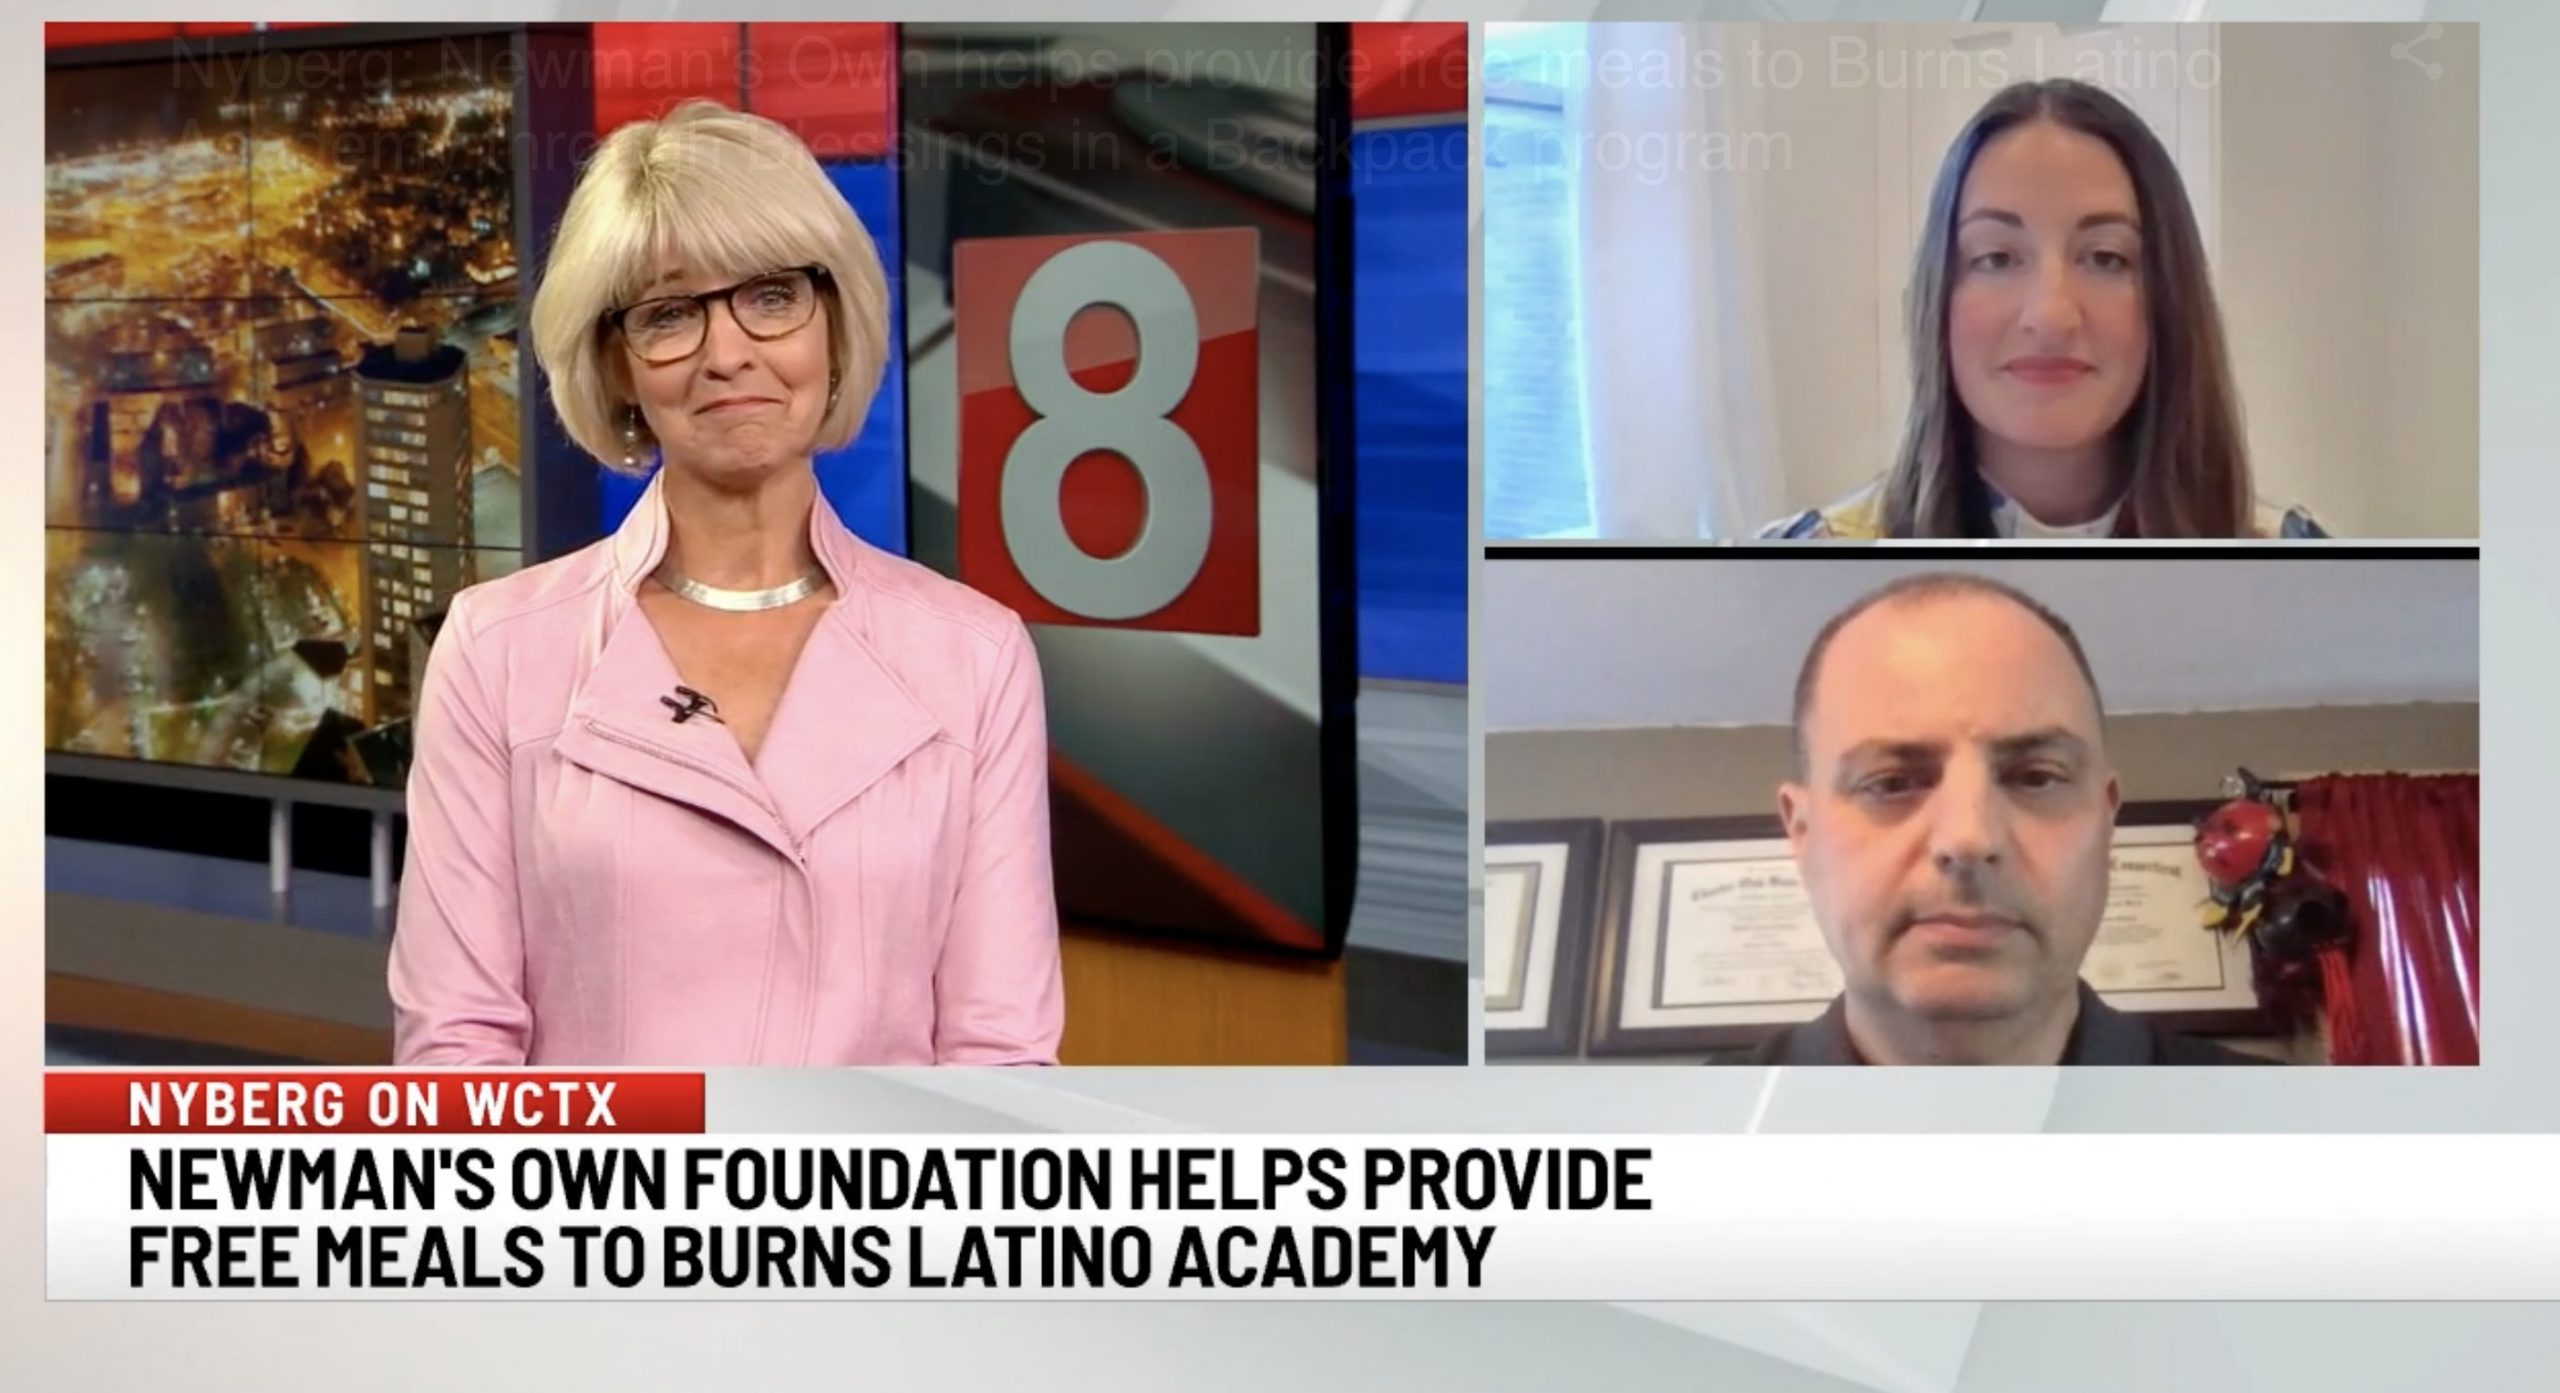 Newman's Own helps provide free meals to Burns Latino Academy through Blessings in a Backpack